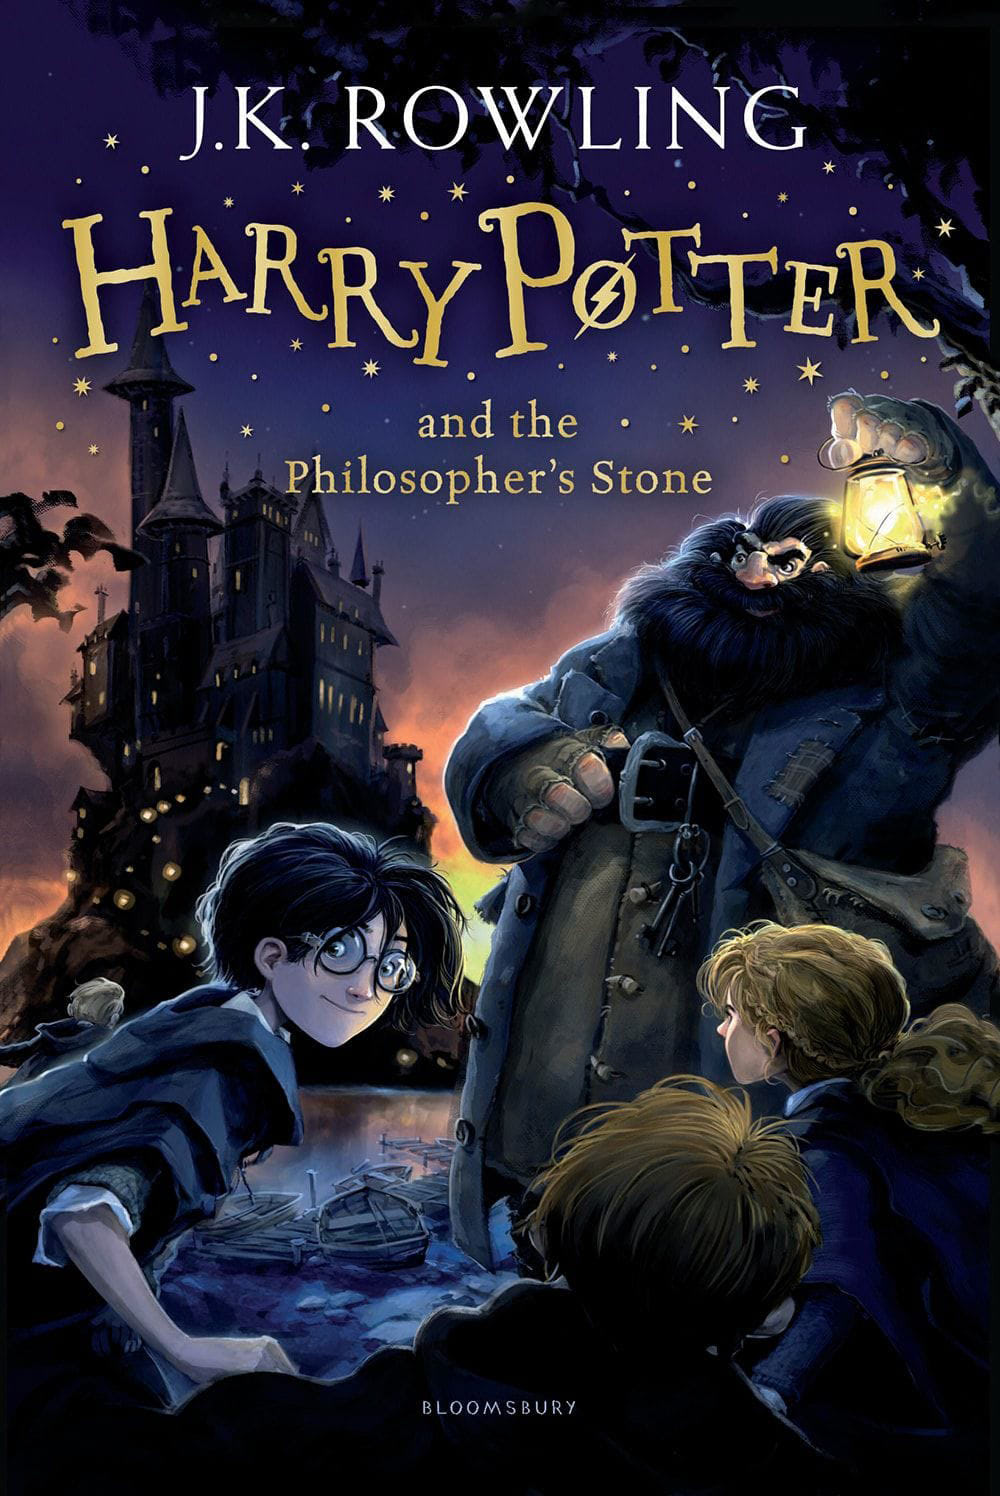 'Philosopher's Stone' UK children's edition (2014)